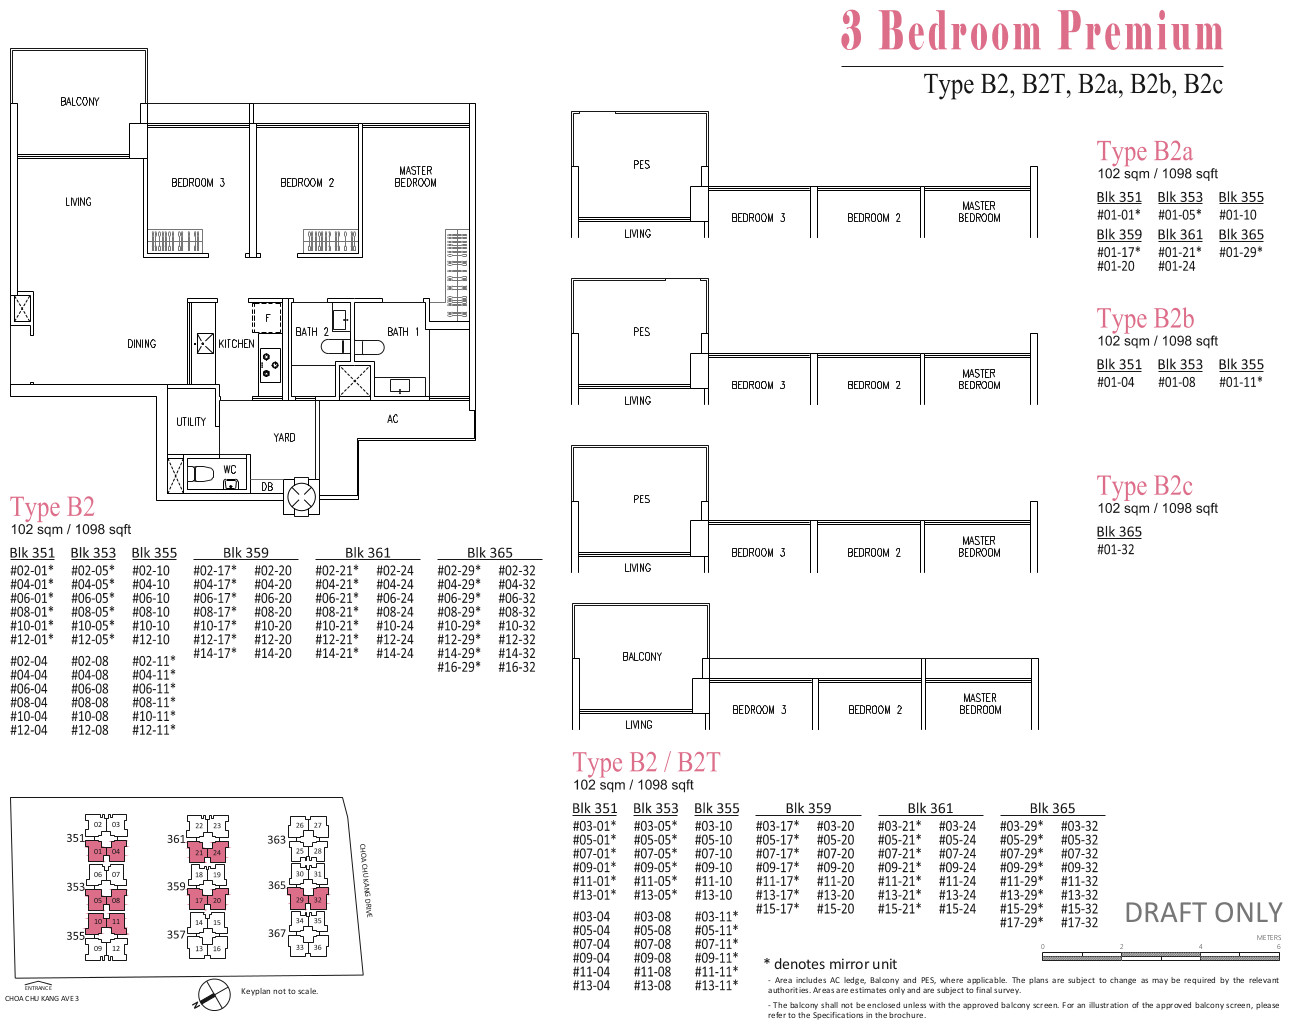 The Wandervale EC Floor Plans . Type B2 . 3 Bedroom Premium